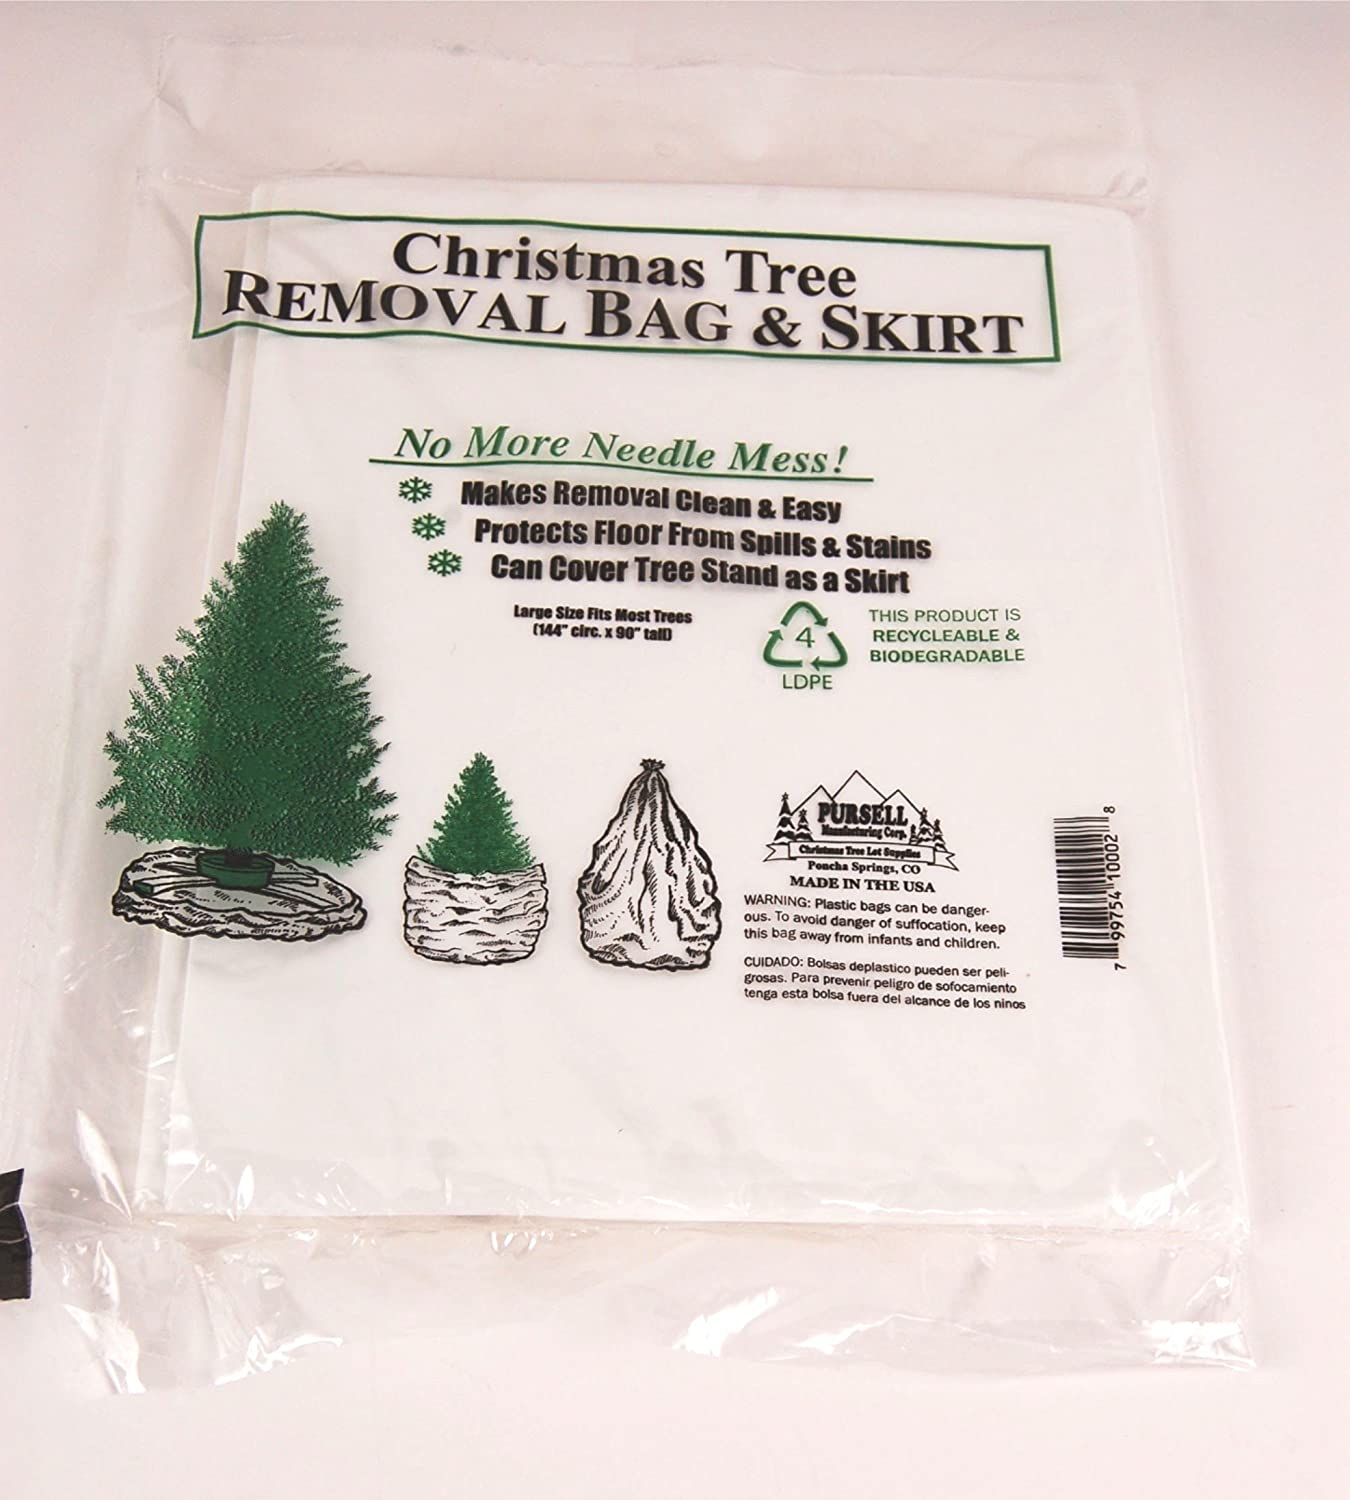 amazoncom jumbo christmas tree disposal and storage bag fits trees to 9 feet home kitchen - Christmas Tree Bags Amazon